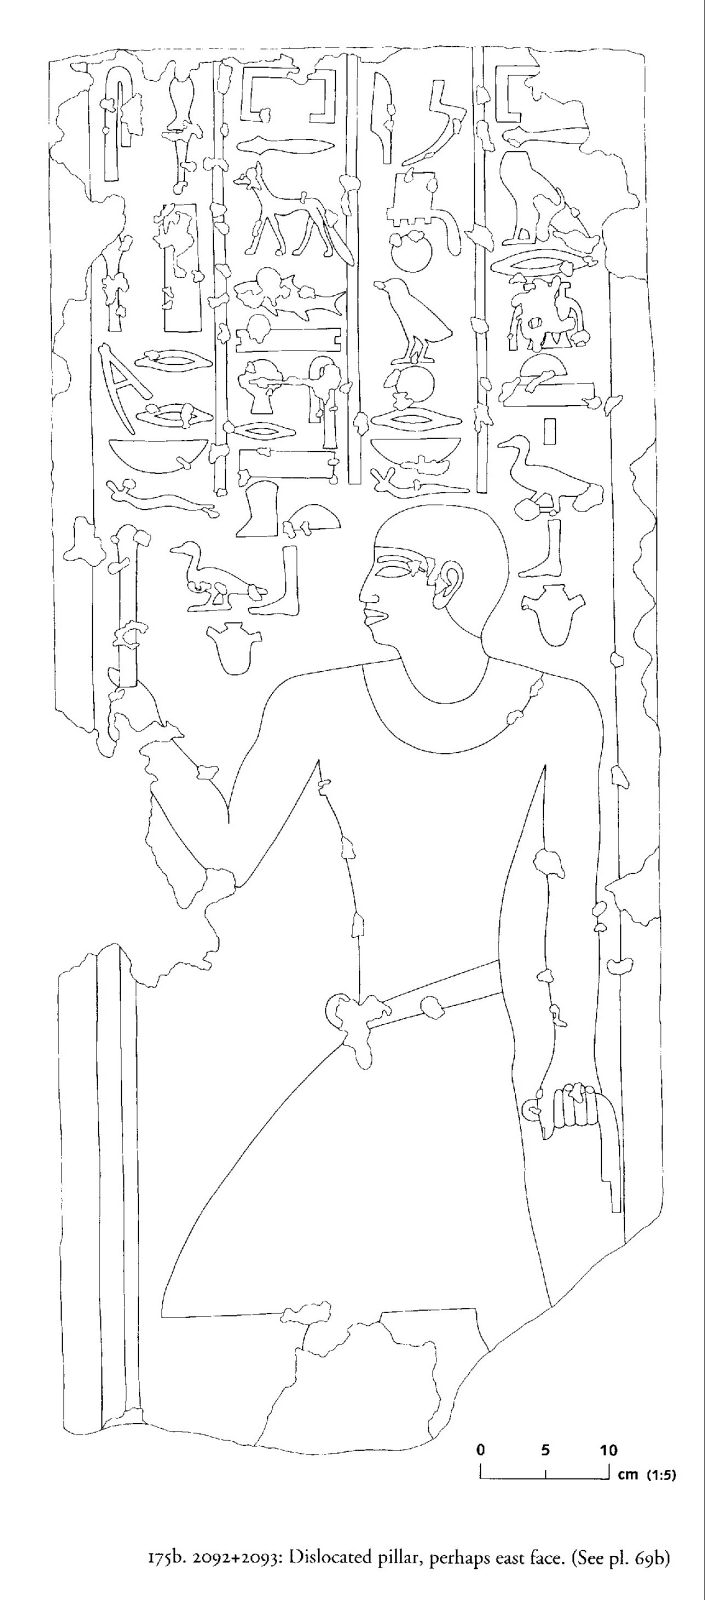 Drawings: G 2092+2093: relief from dislocated pillar, possibly E face